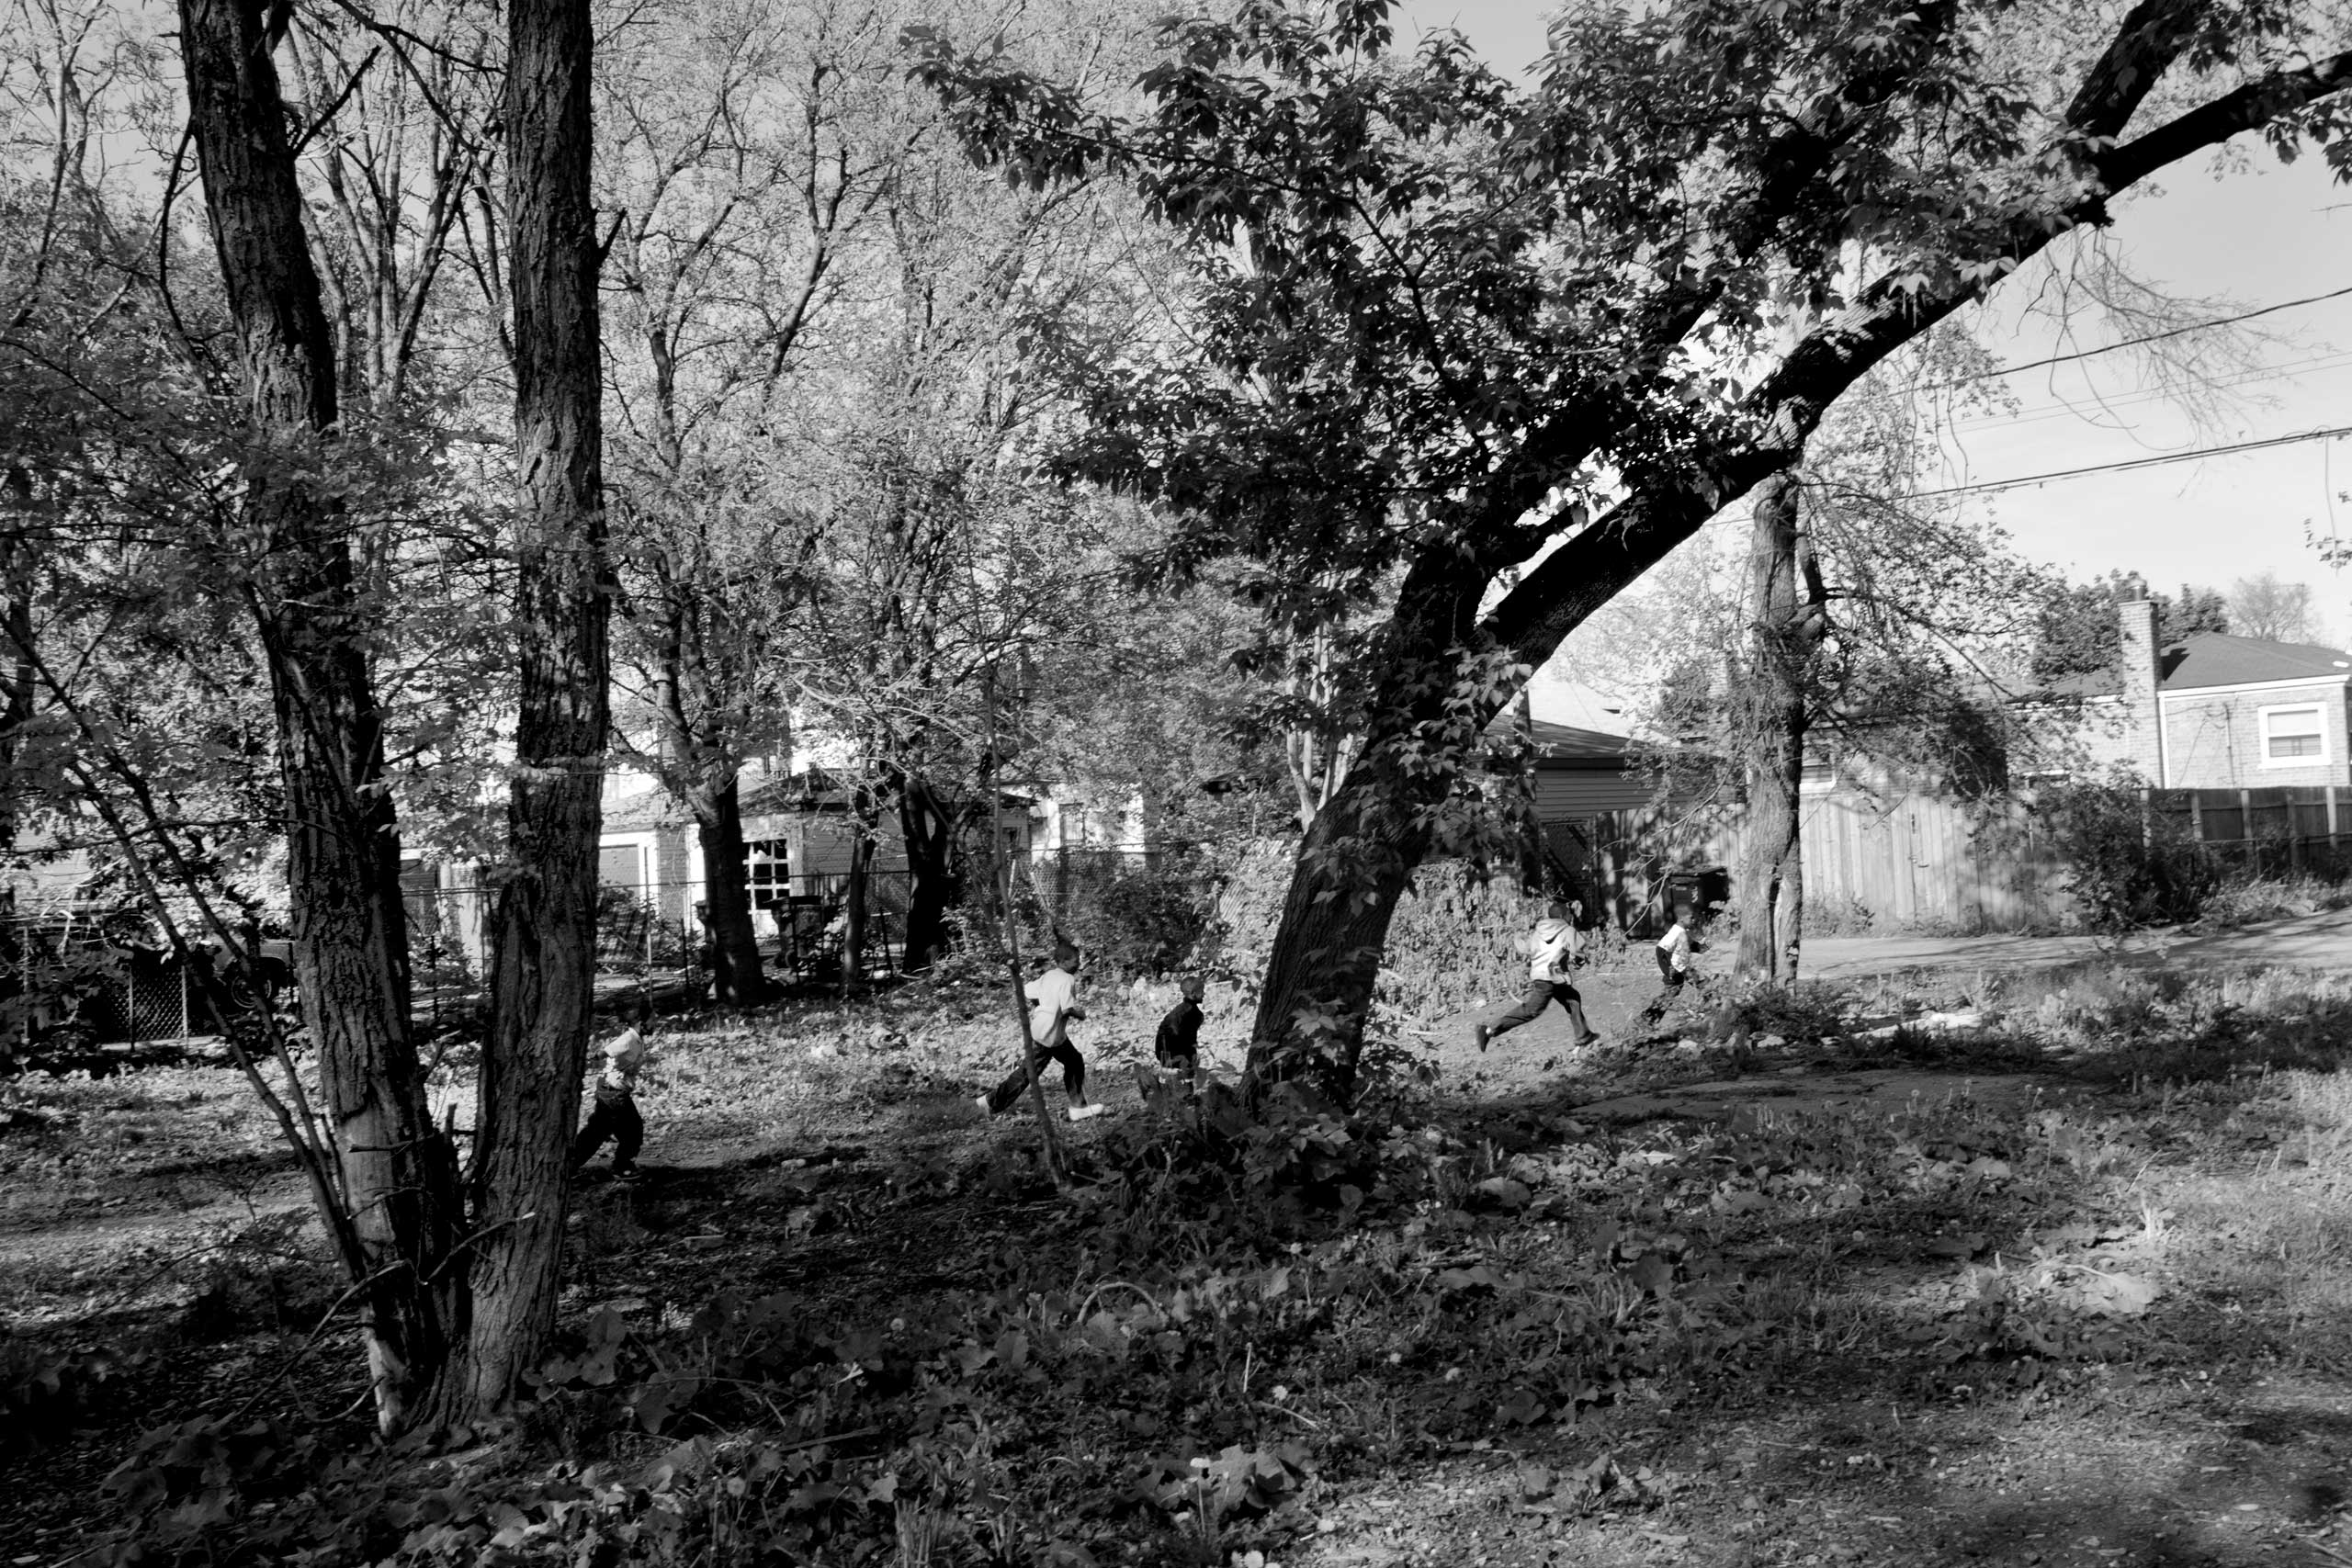 Boys play in an empty lot where homes once stood. Today, all that remains are trees and broken glass surrounded by abandoned homes. Englewood, Chicago, 2007.